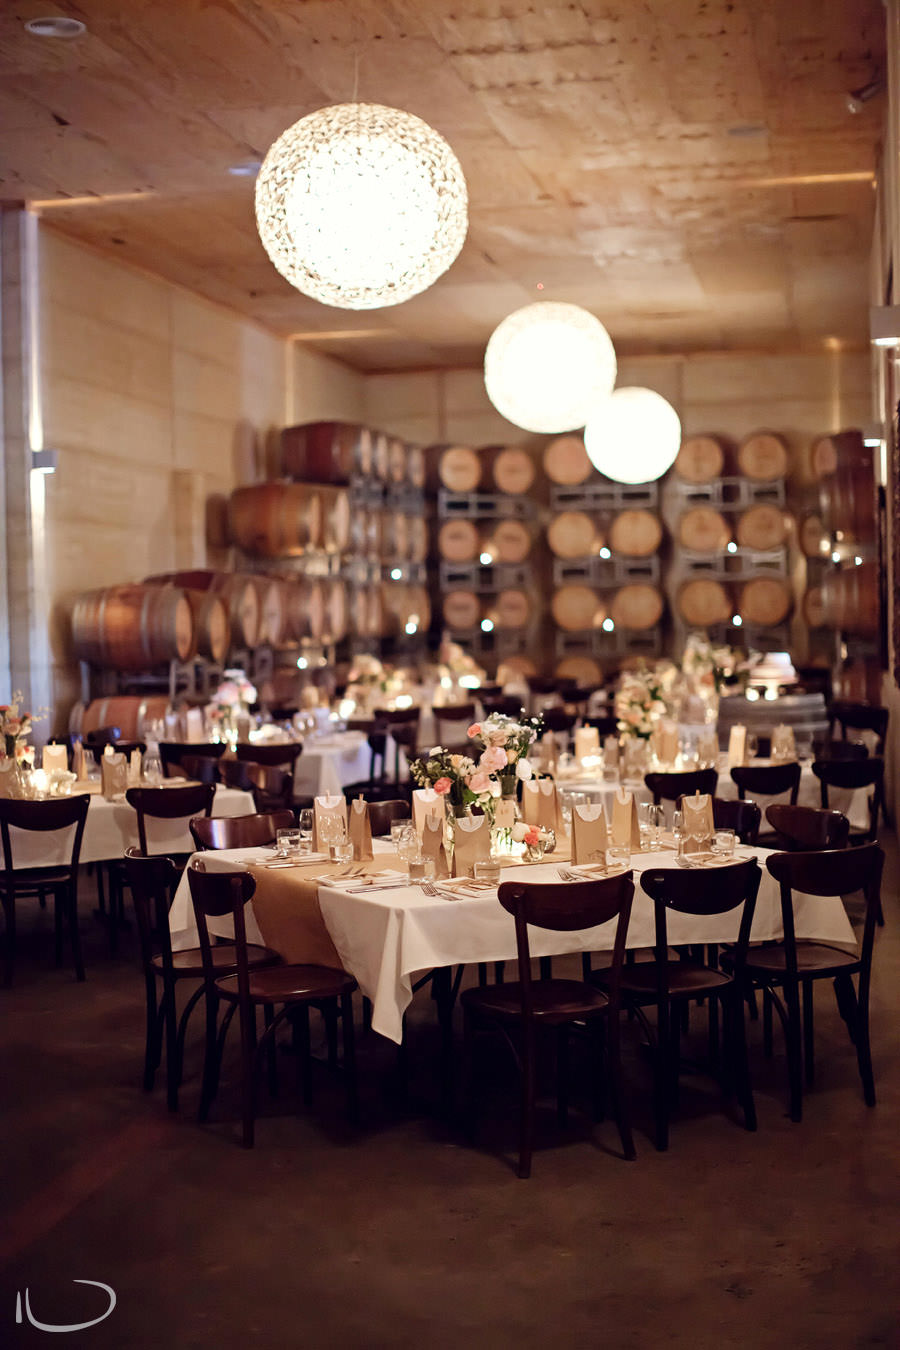 Margan Winery Hunter Valley Wedding Photographer: Wedding reception wine barrel room setup